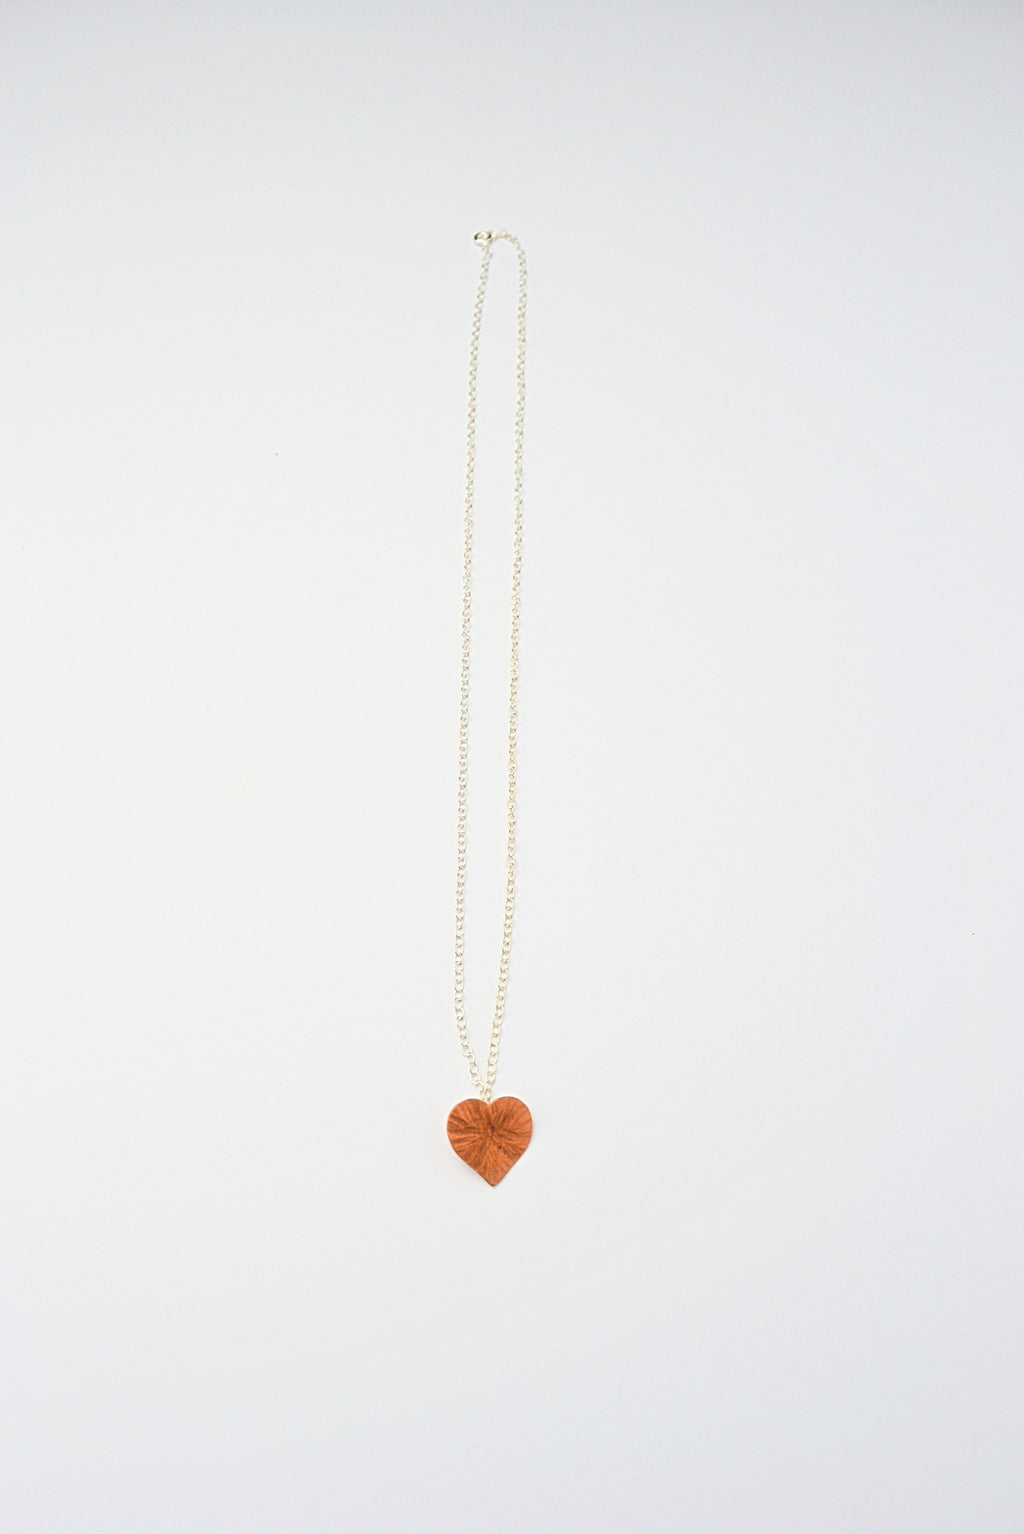 Copper Hammered Heart on Sterling Silver Chain